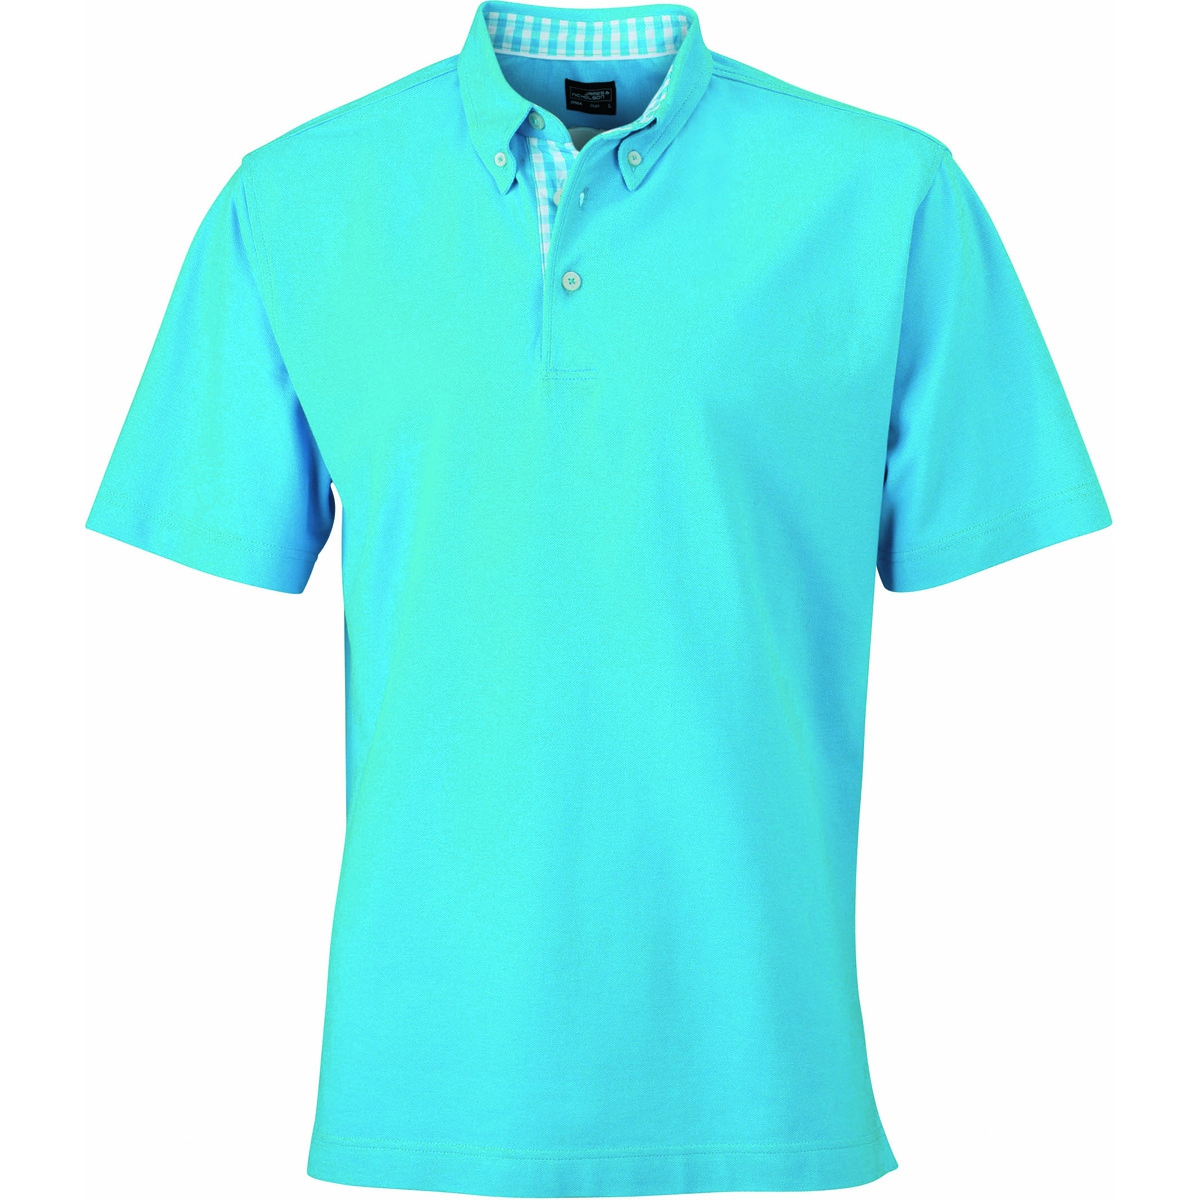 Polo inserts vichy HOMME JN964 - bleu turquoise col turquoise-blanc